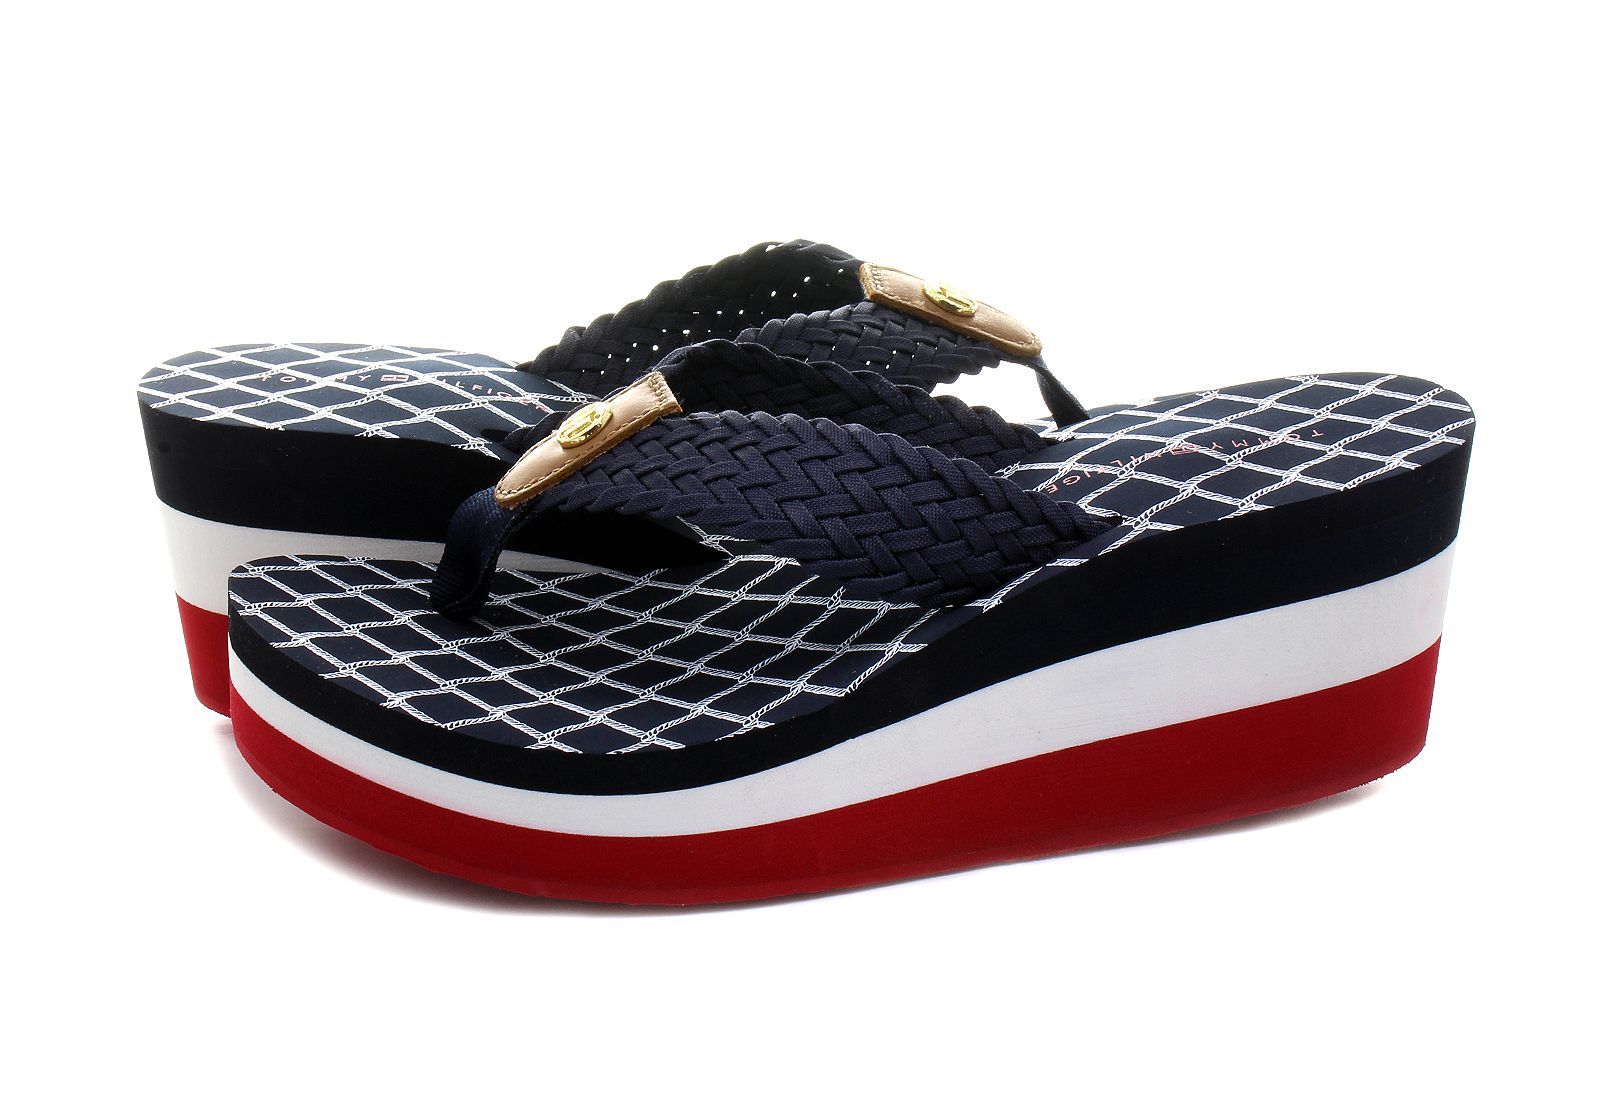 Tommy Hilfiger Papucs - Mariah 3d - 17S-0473-403 - Office Shoes ... 167363a561